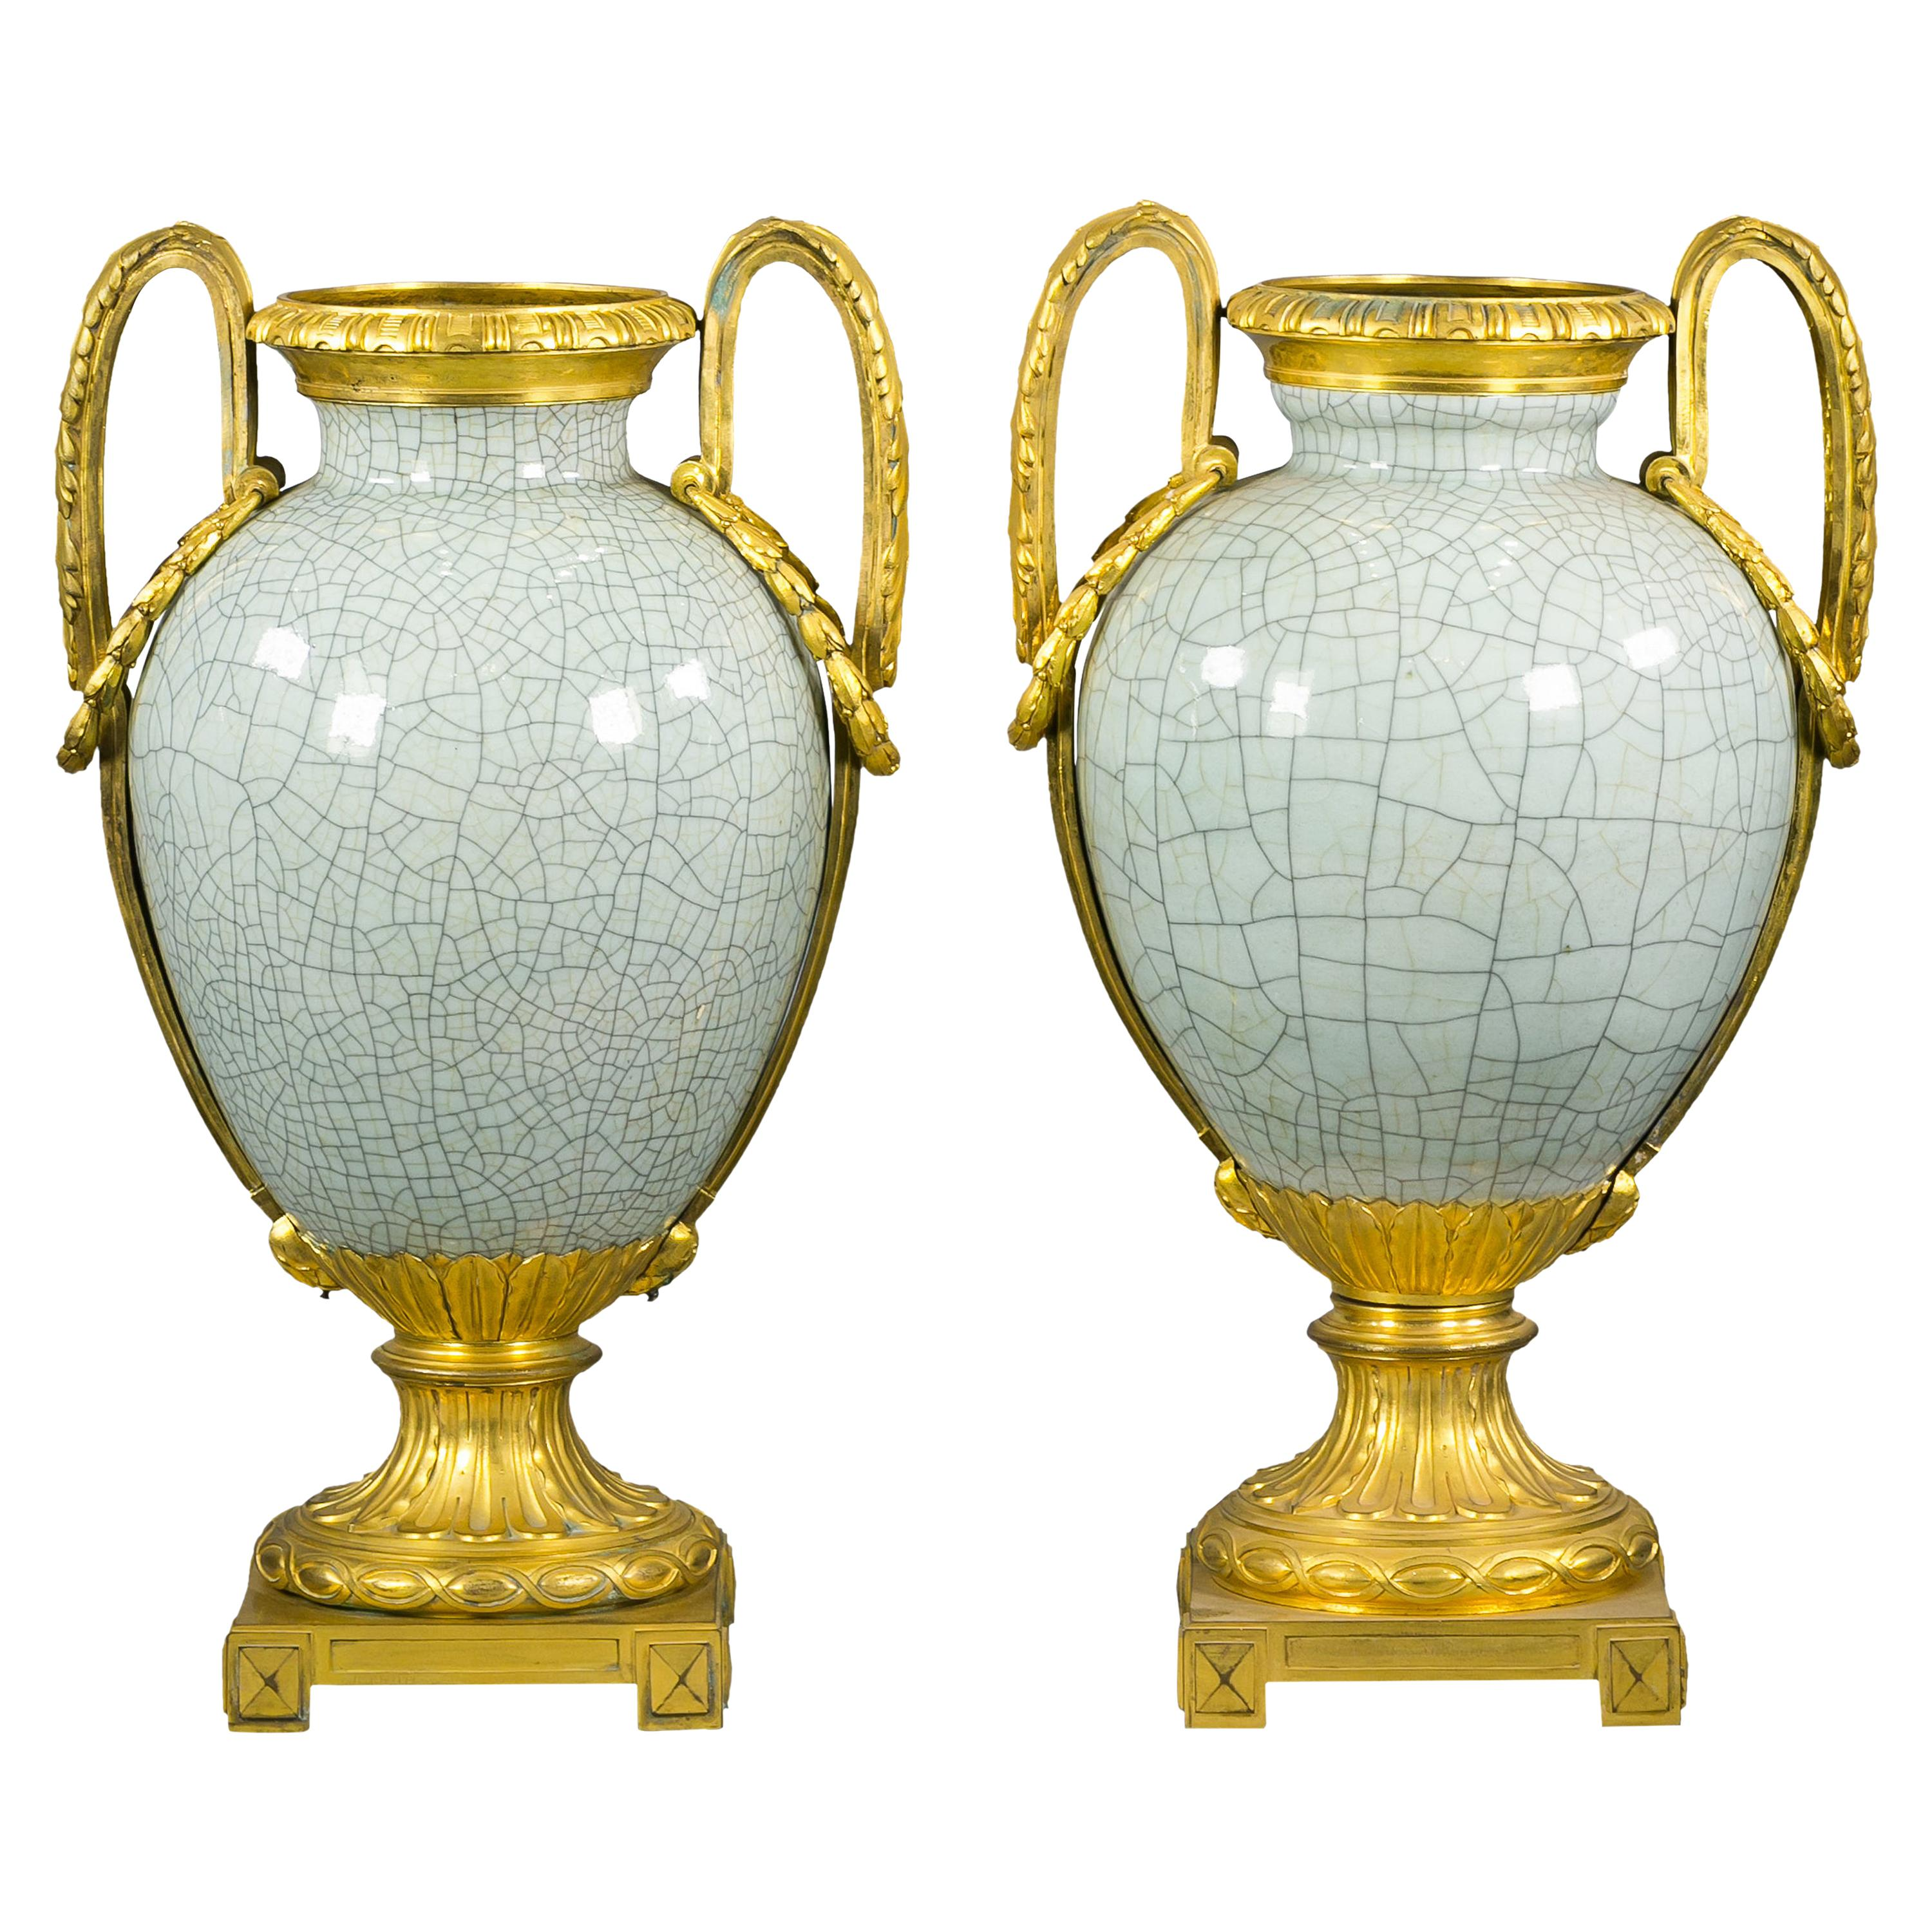 Pair of Bronze Mounted Crackled Celadon Vases, French, circa 1880